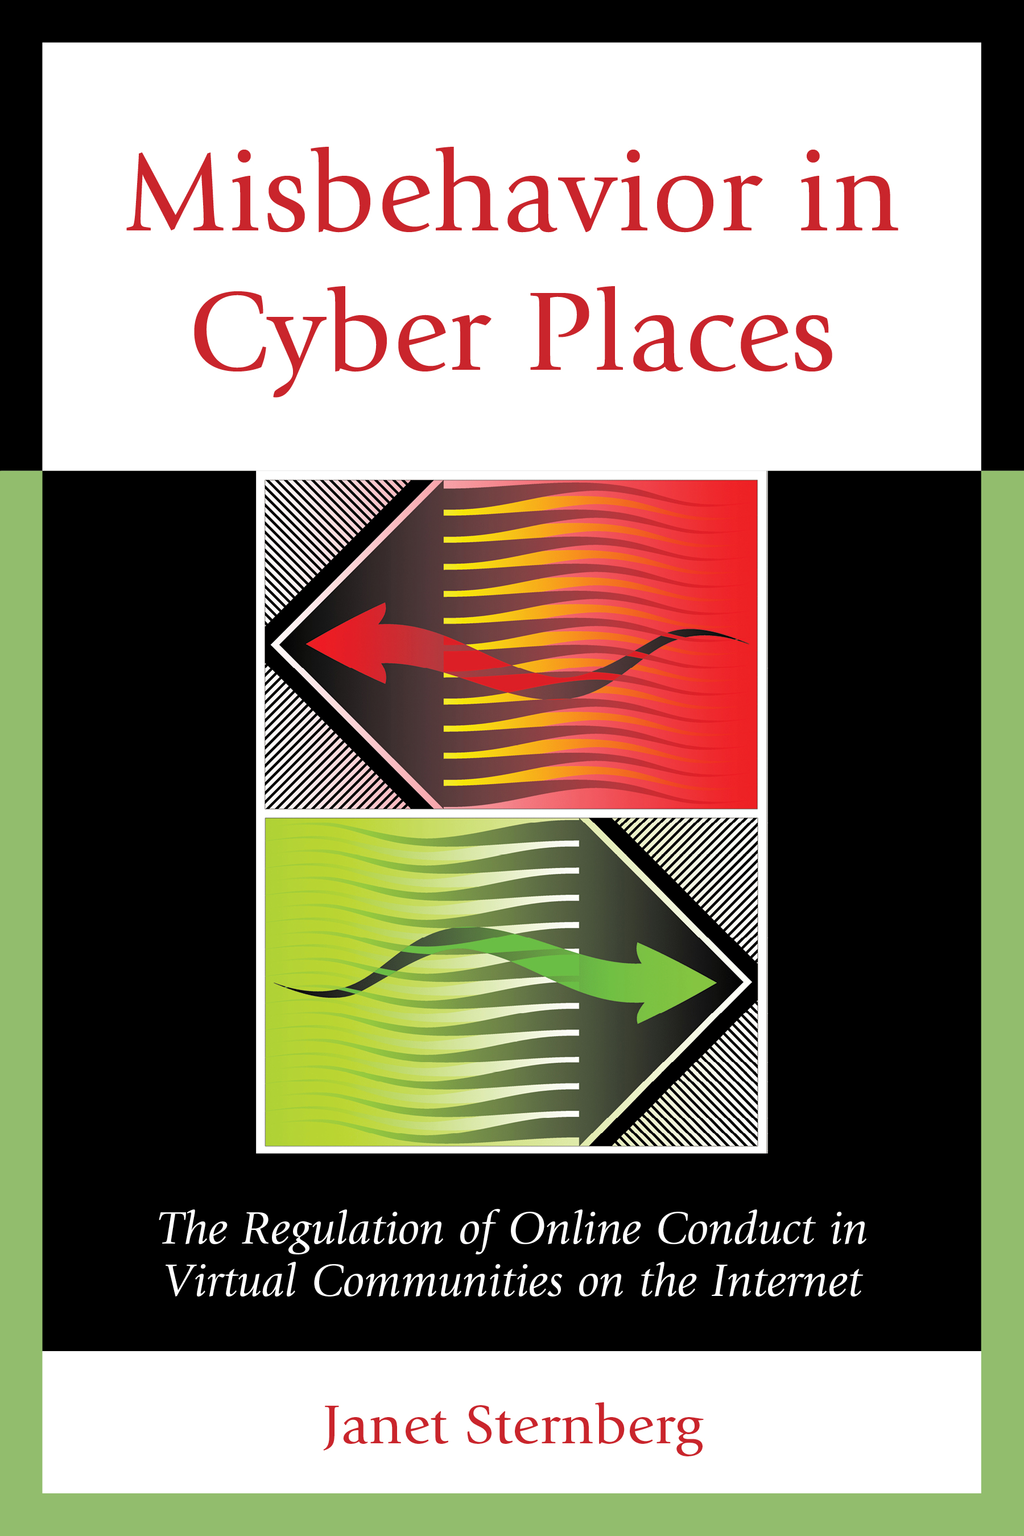 Misbehavior in Cyber Places The Regulation of Online Conduct in Virtual Communities on the Internet